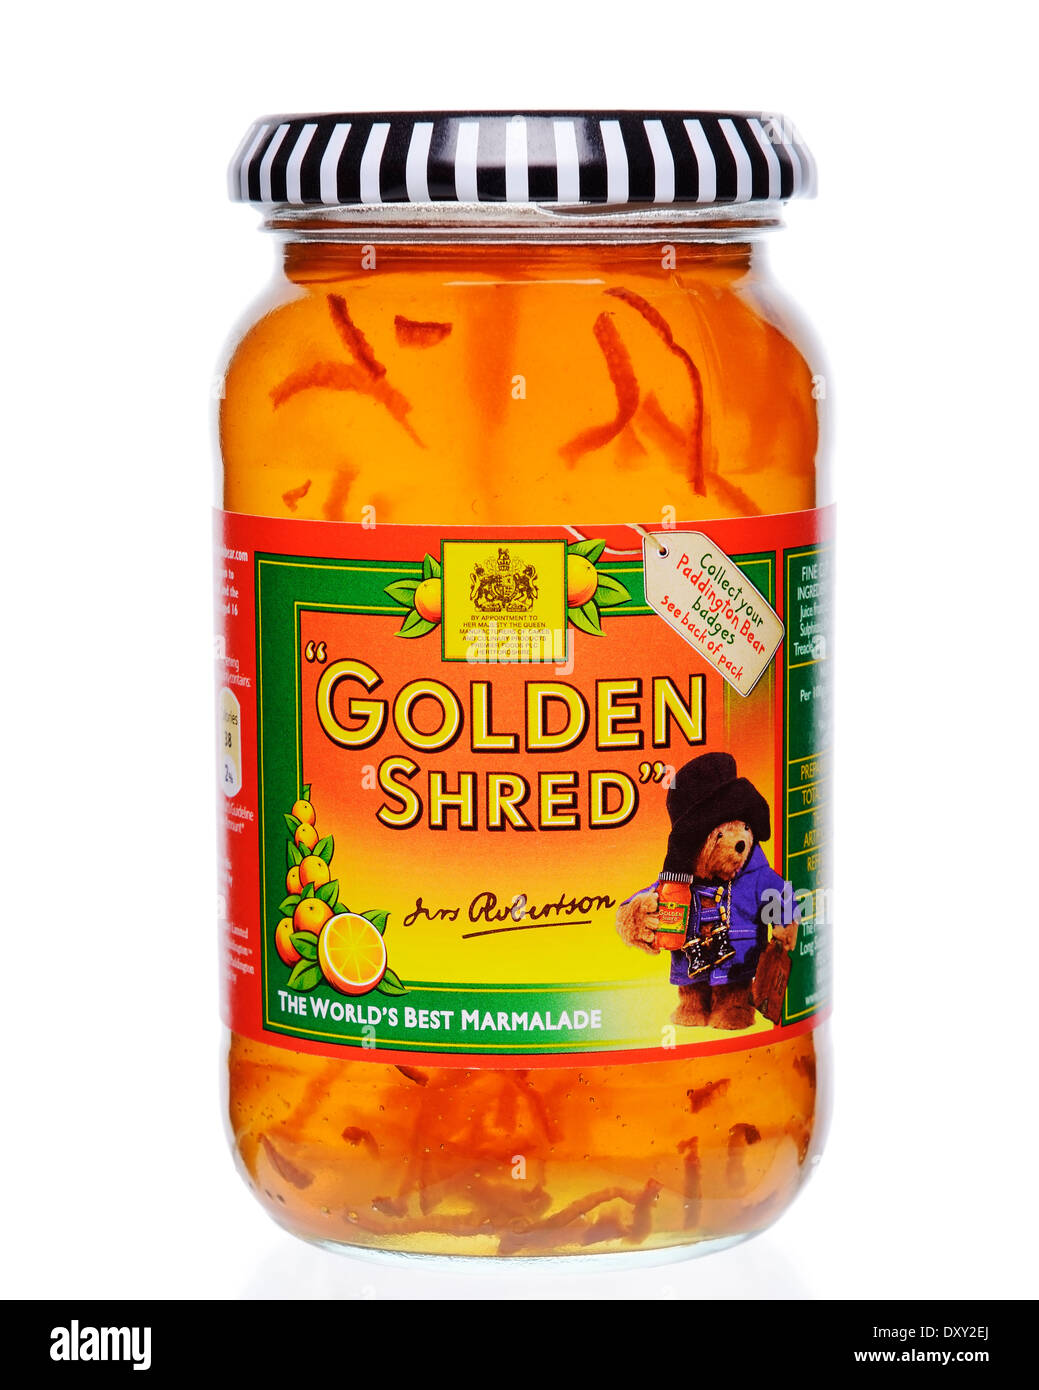 Robertsons Golden Shred Marmalade, a Traditional and Popular British Food. - Stock Image